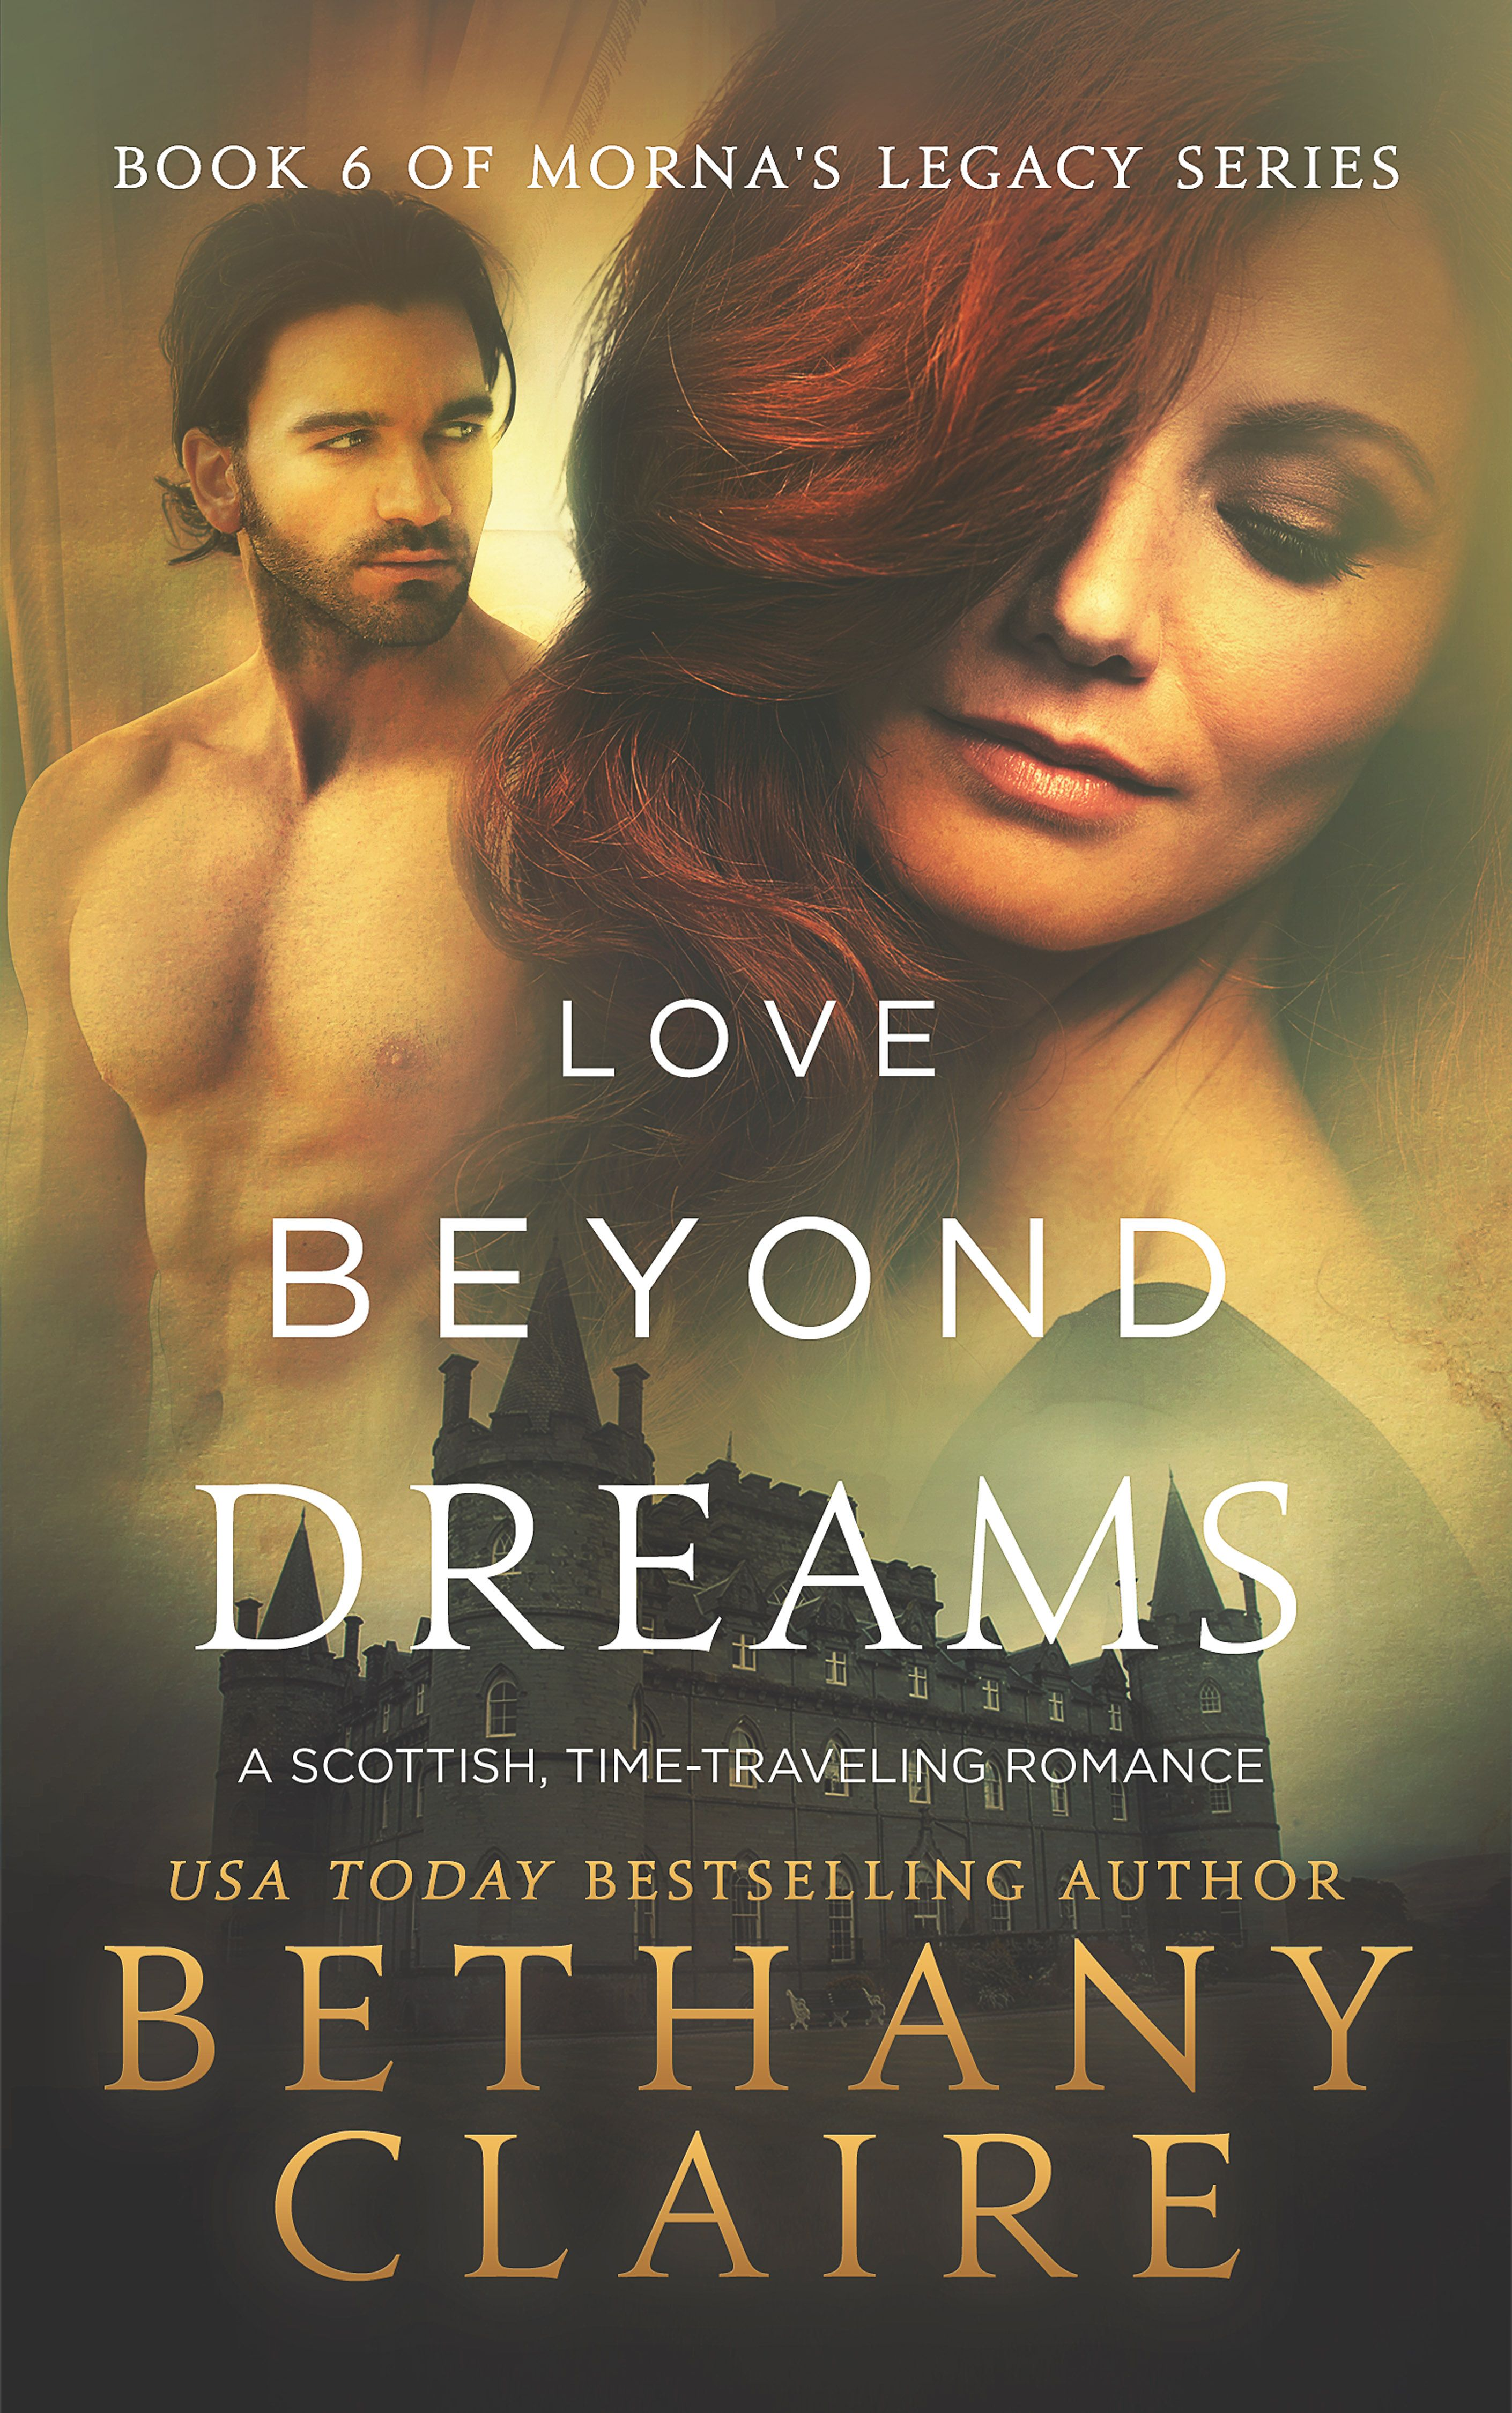 Love Beyond Dreams Book 6 Of Mornas Legacy Series Bethanyclaire